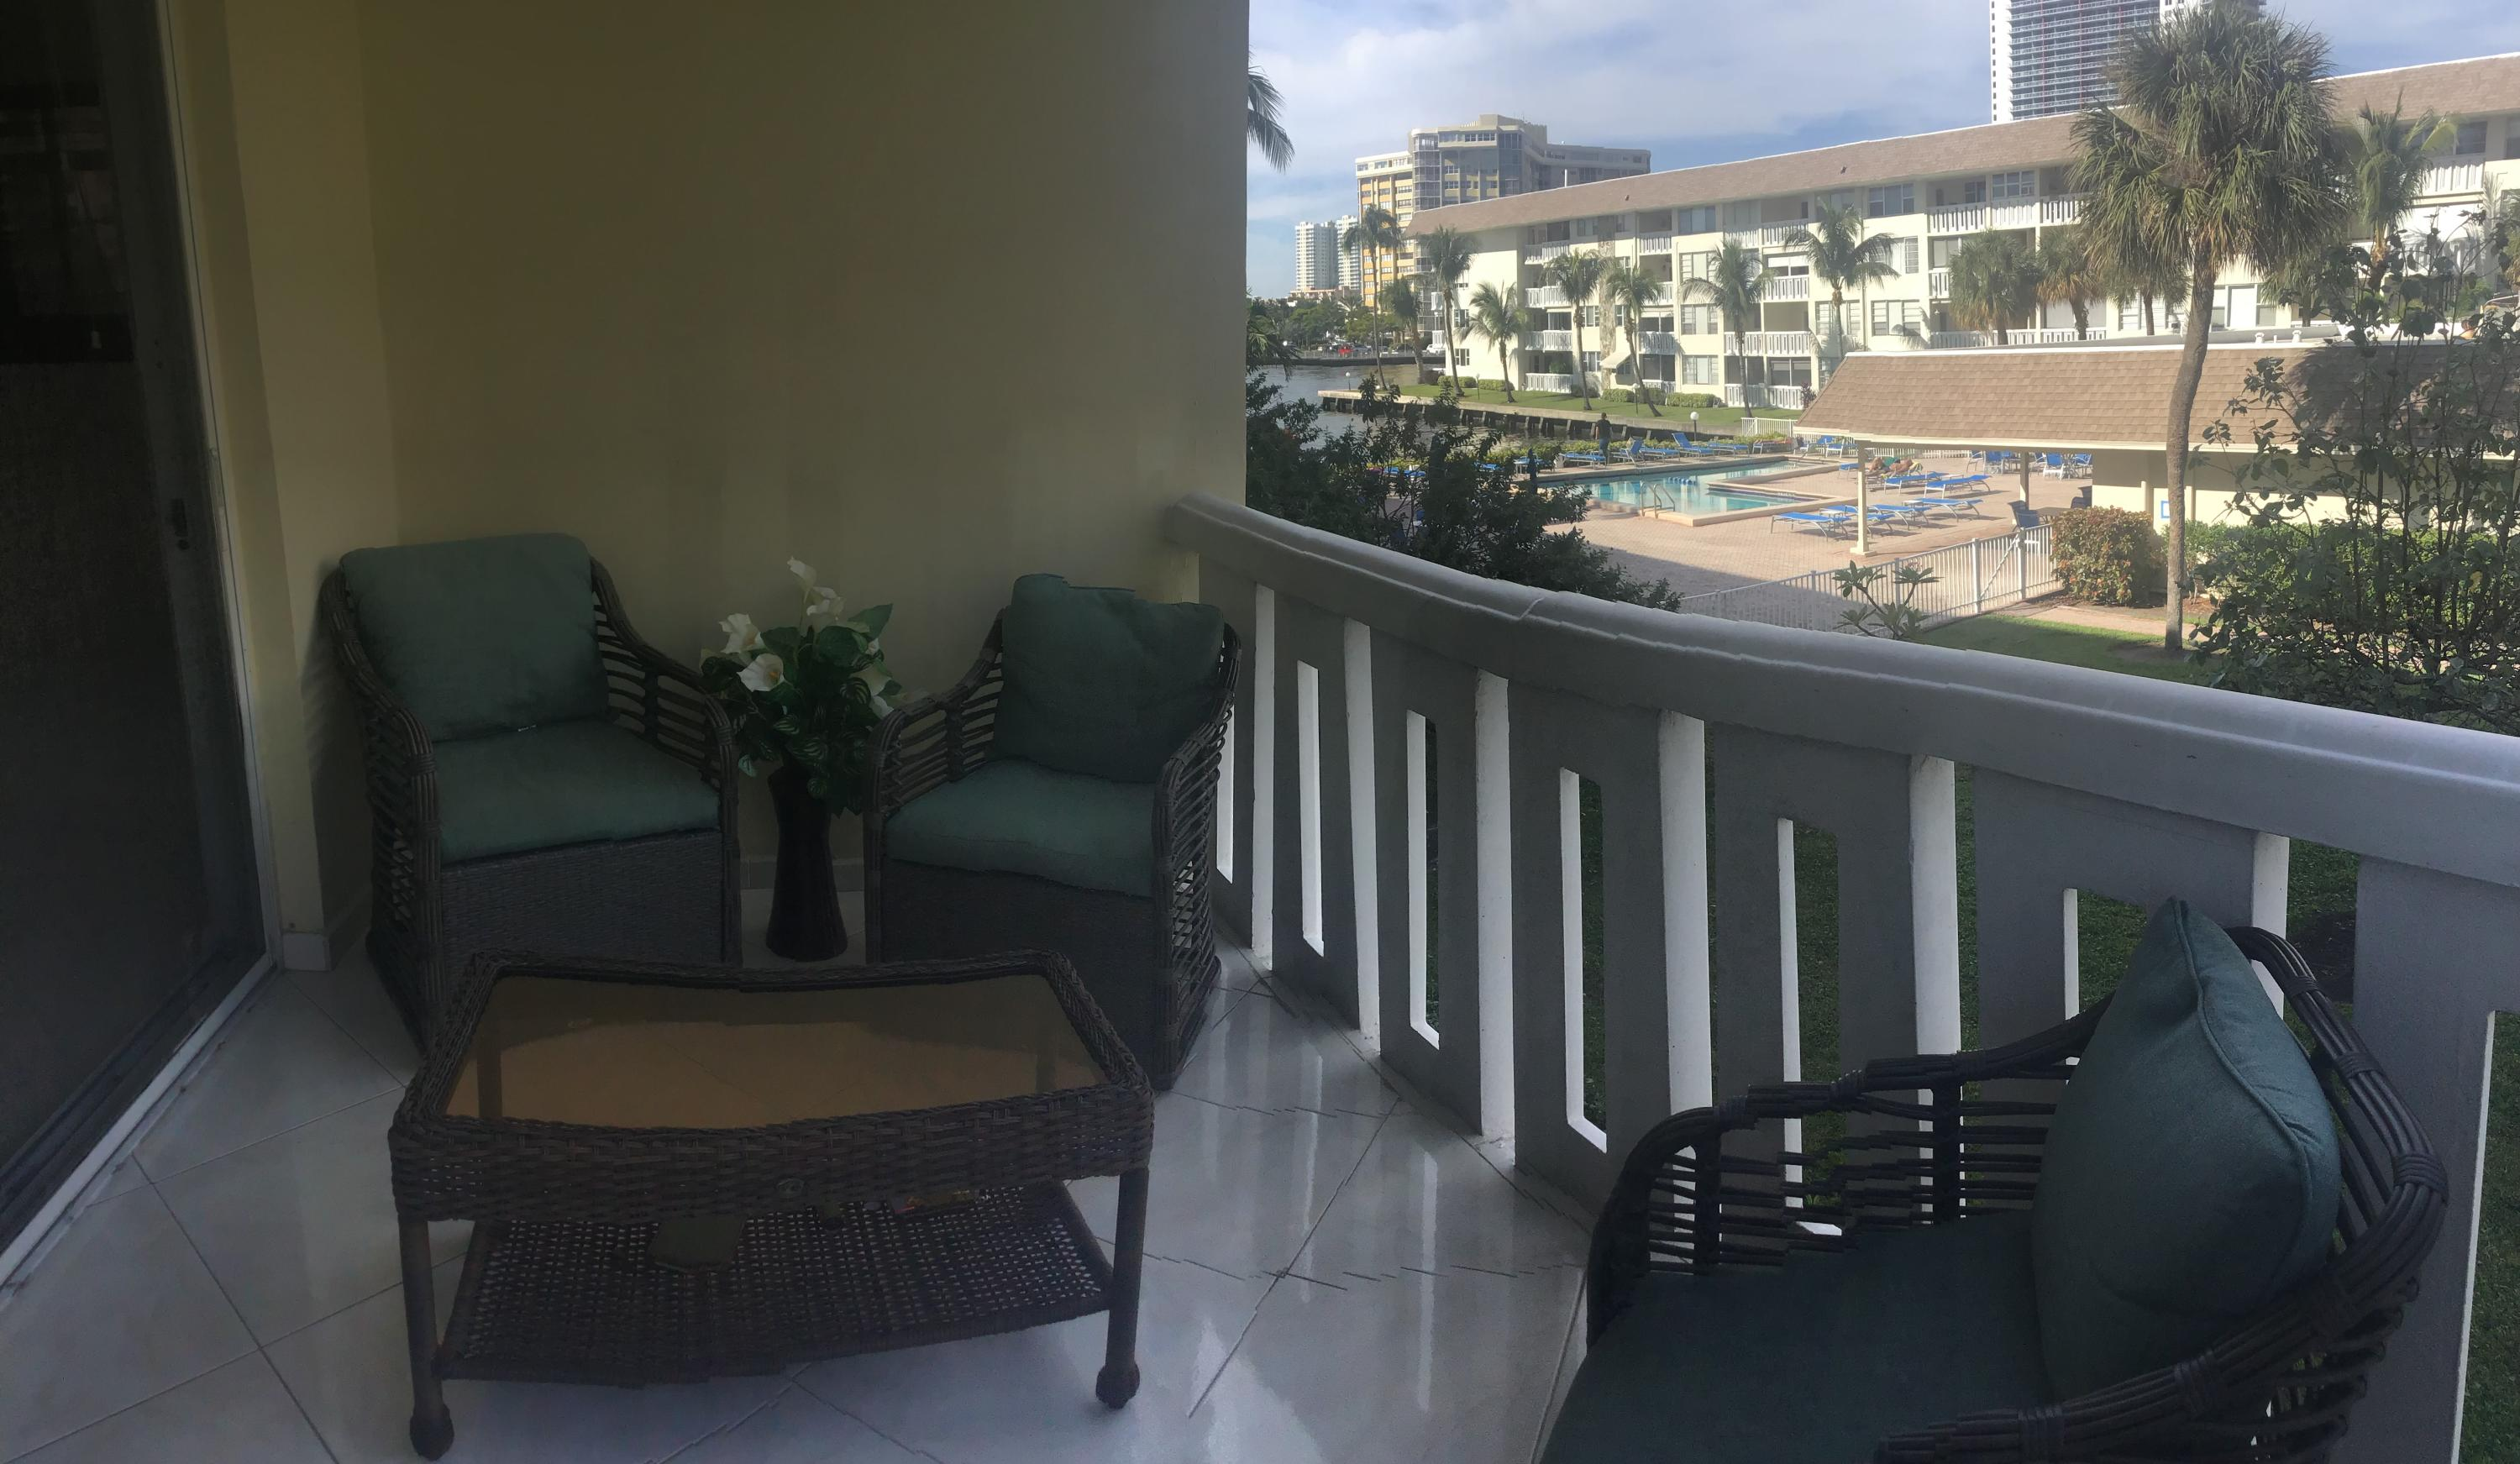 Open balcony with water and pool view